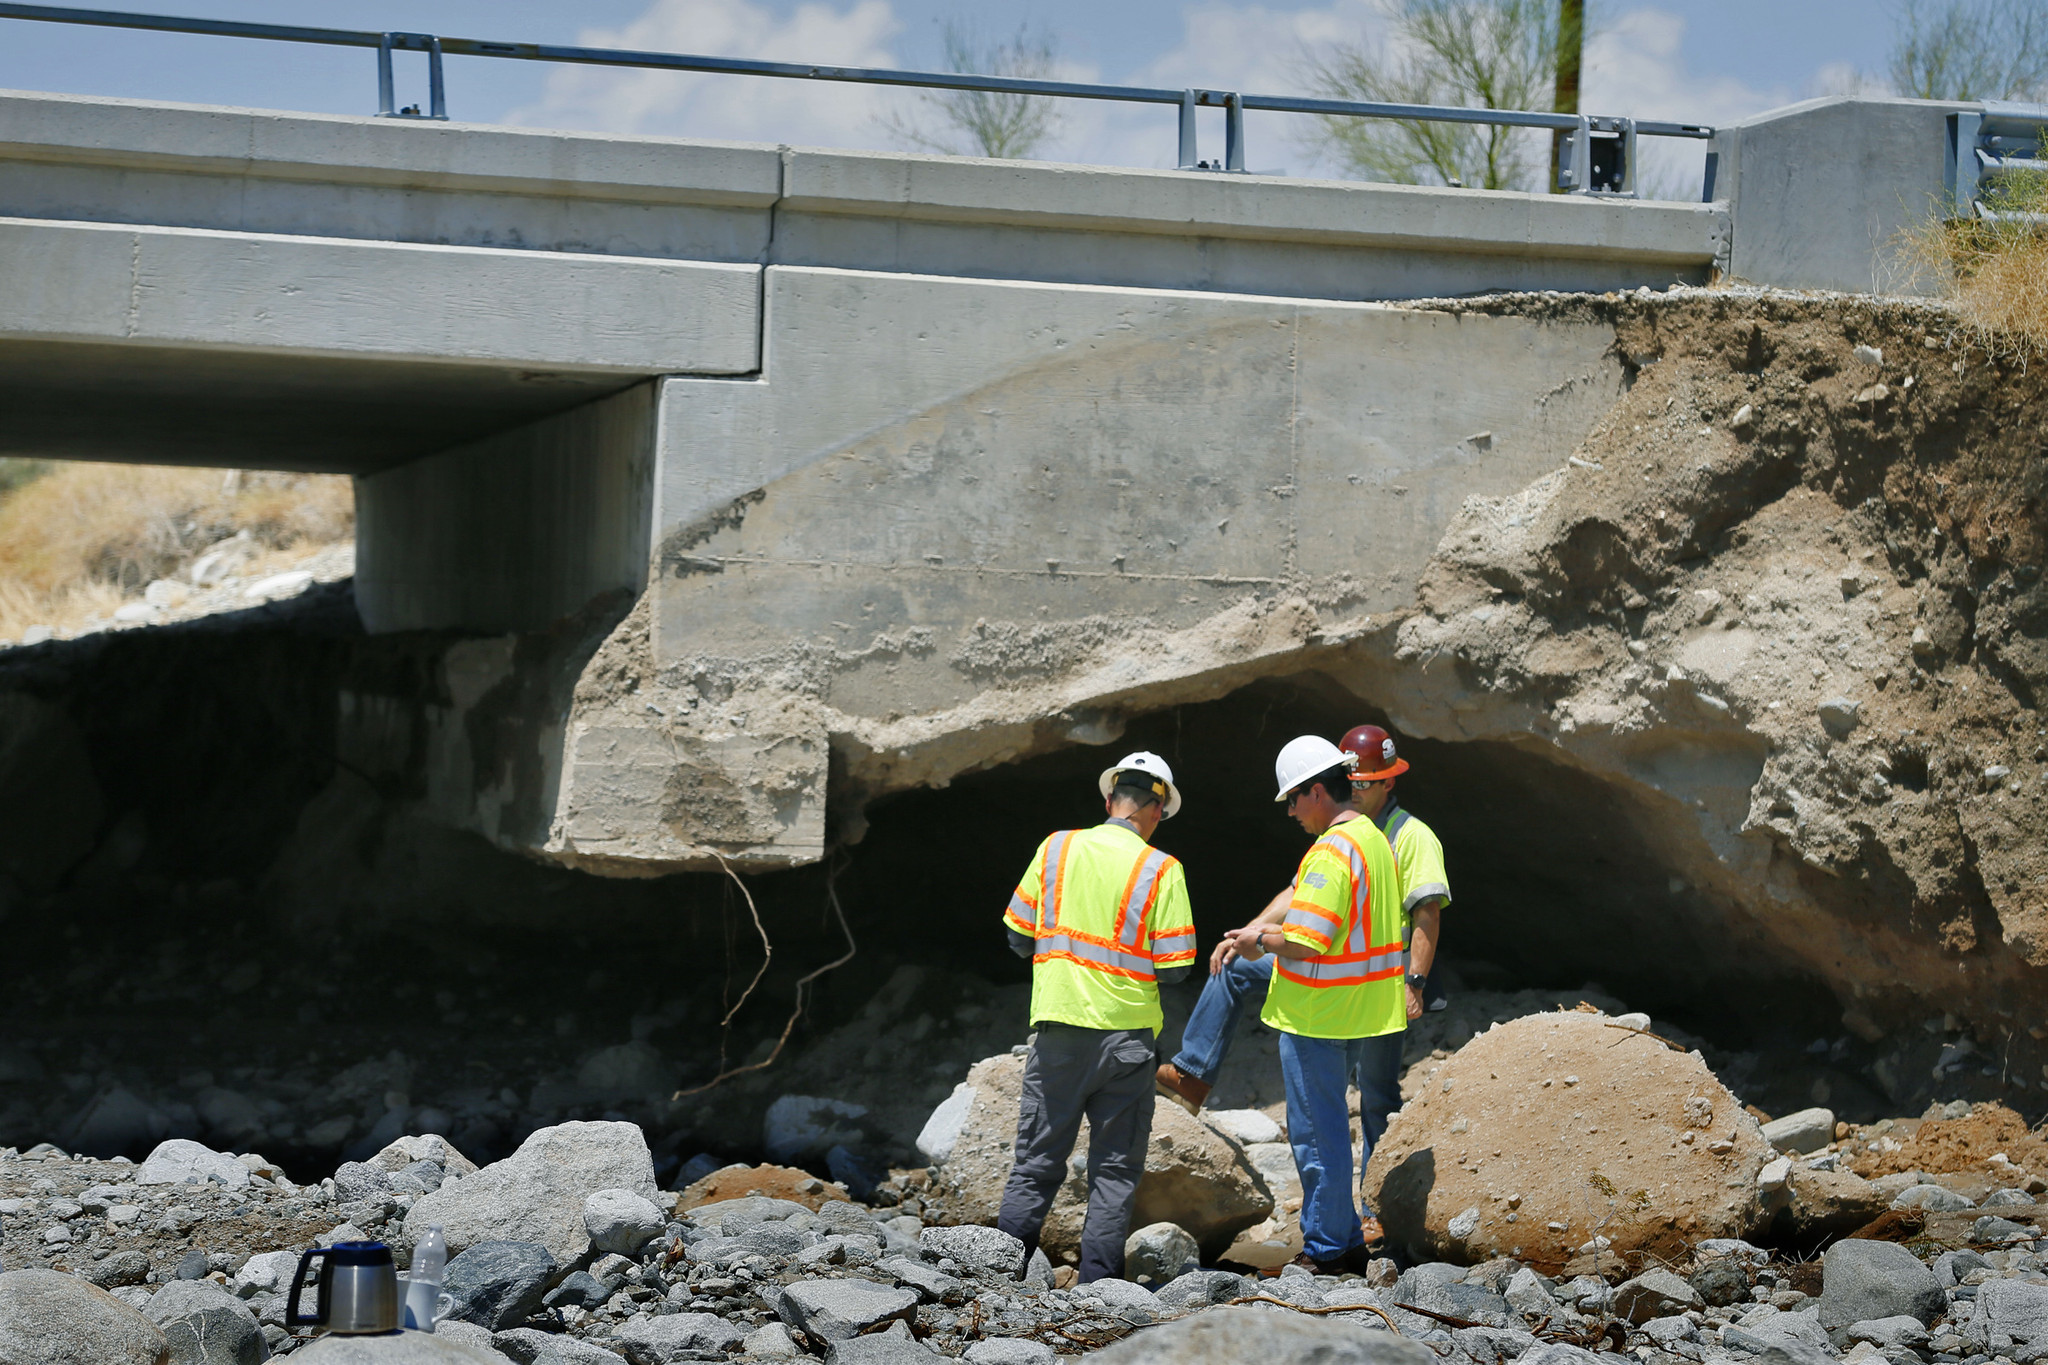 CalTrans inspectors assess the condition of the westbound bridge on Interstate 10 between Coachella and the Arizona border after a flash flood. (Los Angeles Times)